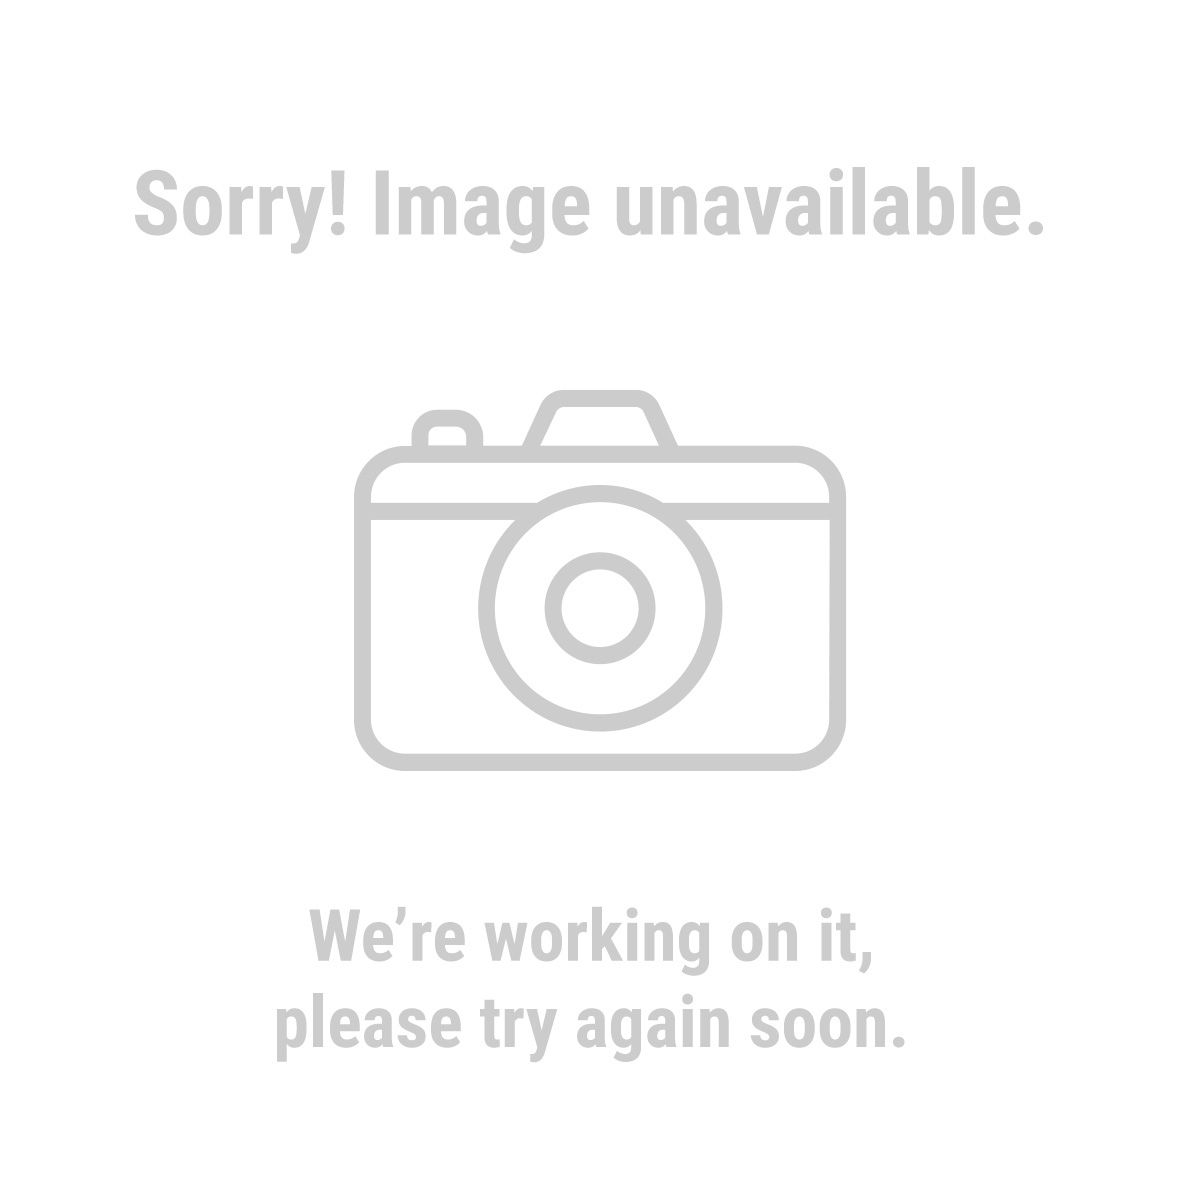 Harbor Freight Tools 37314 5 Pack 3-3/4'', 80 Grit Hook and Loop Triangle Sanding Pads